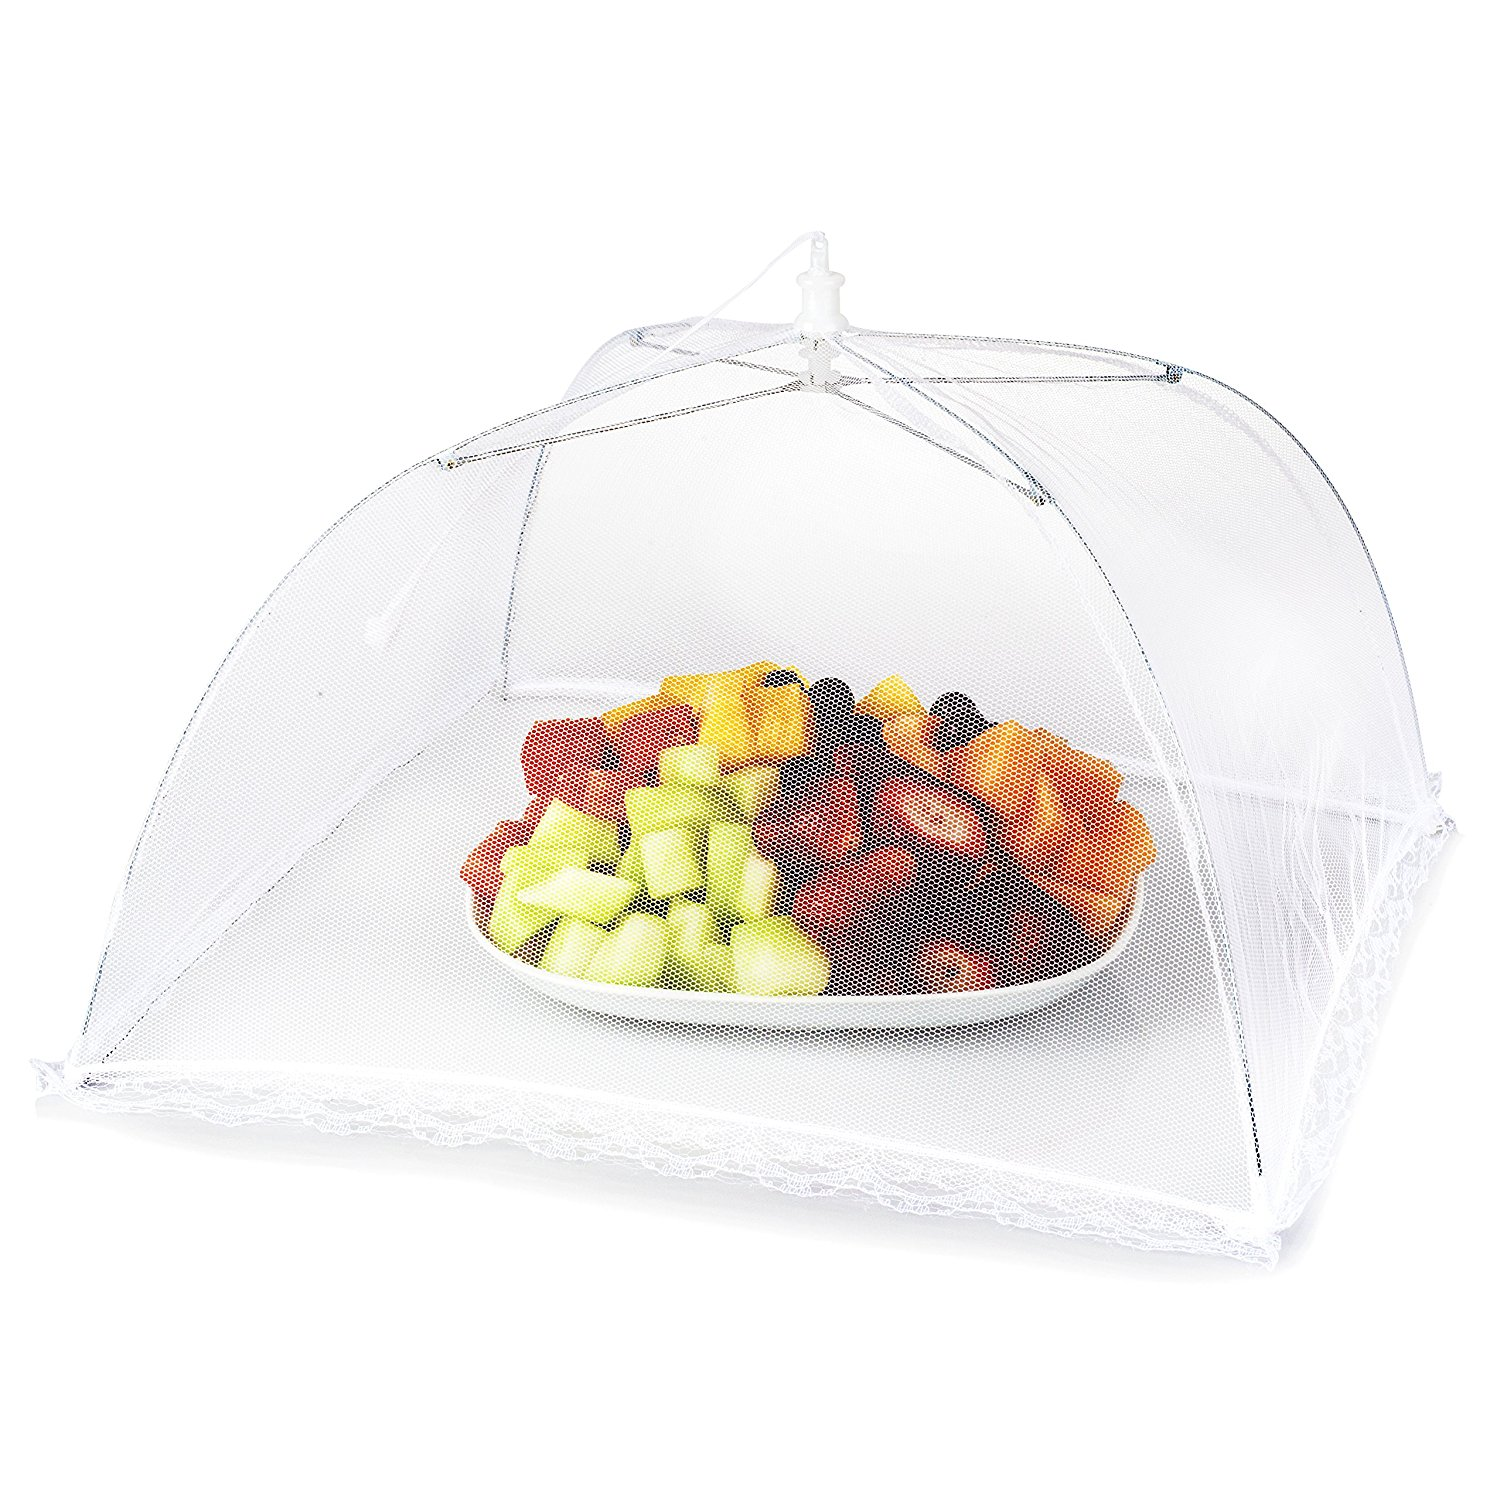 Get Quotations · Mesh Picnic Food Tent Covers 6 Collapsible Umbrella Tents for Picnics BBQ C&ing  sc 1 st  Alibaba.com & Cheap Rv Tent Covers find Rv Tent Covers deals on line at Alibaba.com